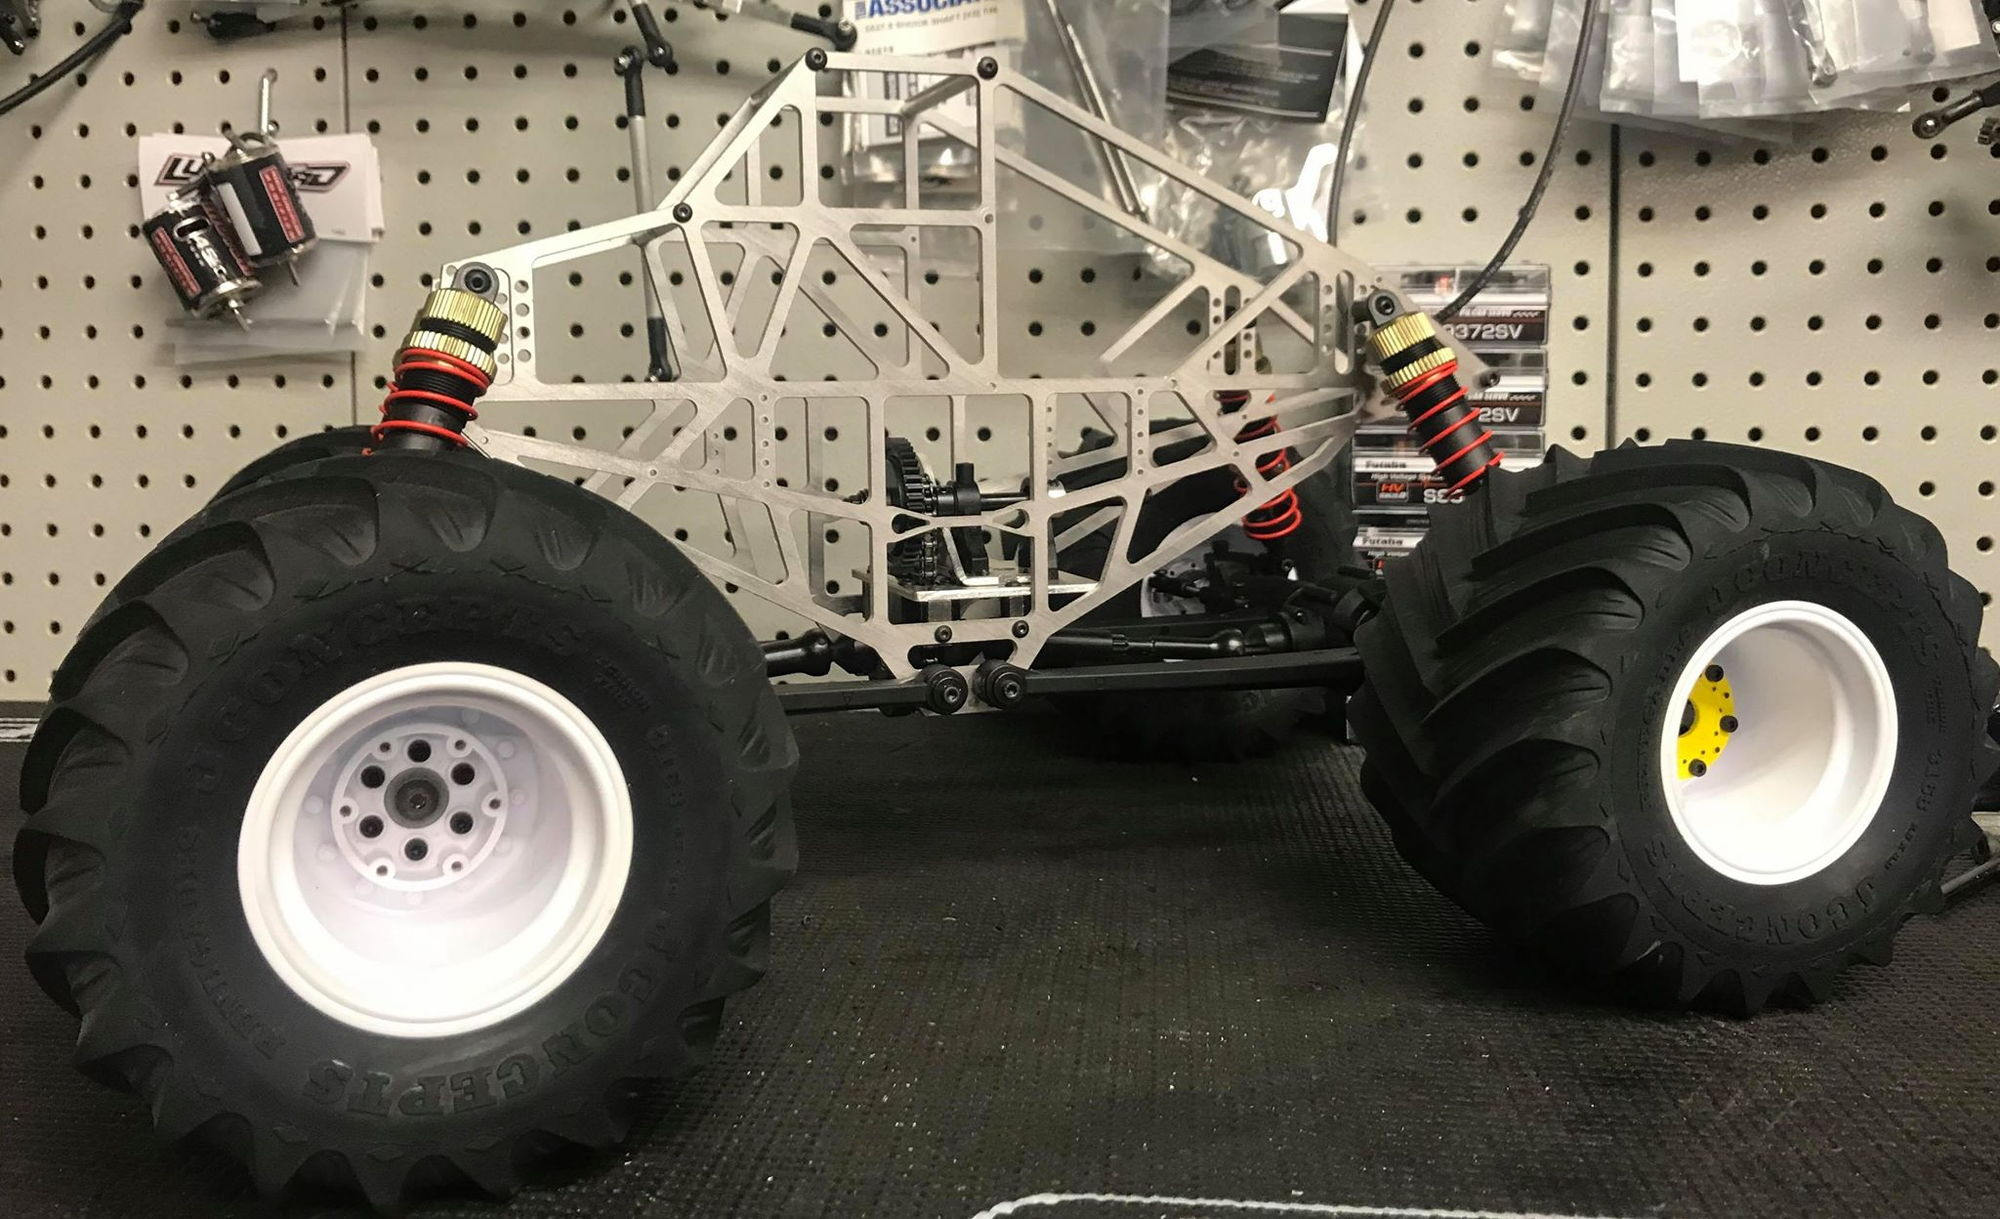 Solid Axle Rc Monster Truck Kit Cheap Online